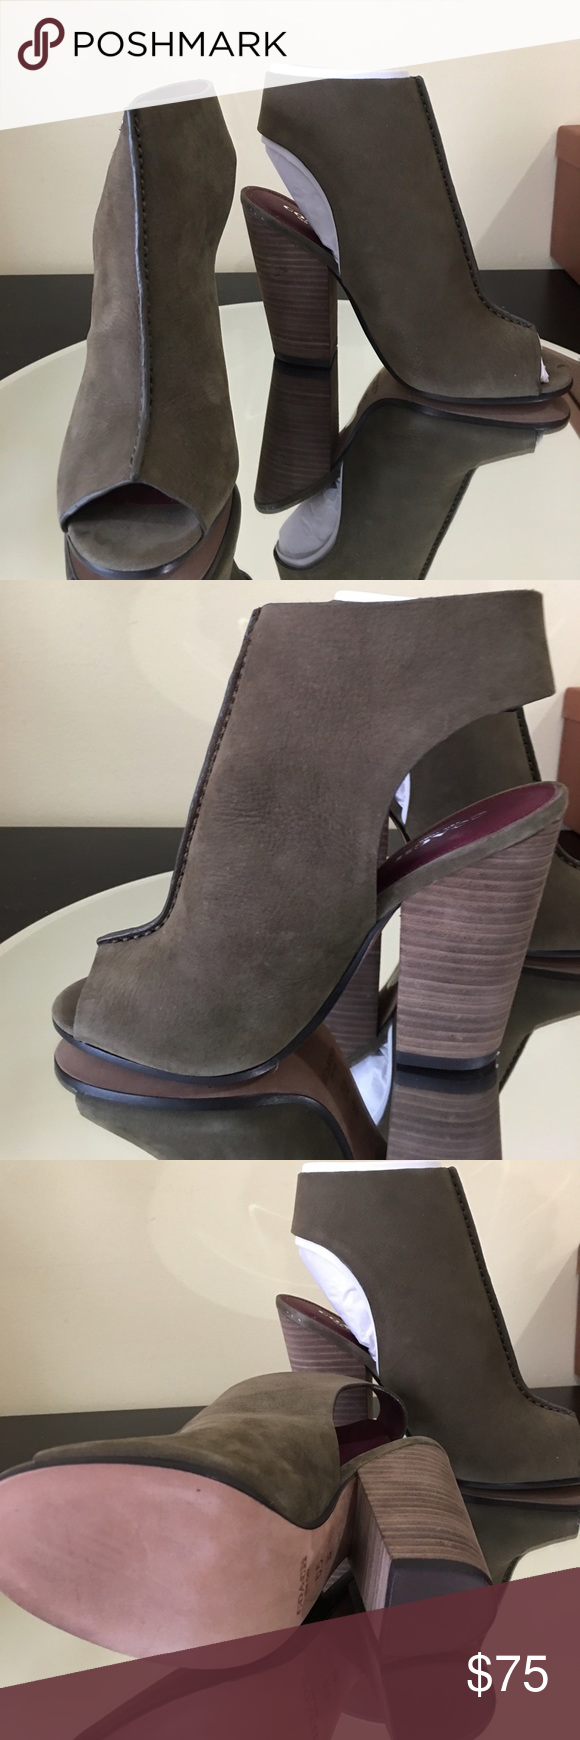 """COACH Saratoga Peep Toe Booties A chic peep-toe bootie set on a tall, blocky stacked heel. 4 1/4"""" heel (size 5.5). Adjustable strap with buckle closure. Leather upper, lining and sole. Nubuck leather Olive color By COACH  Women's Shoes. new. never worn. Coach Shoes Ankle Boots & Booties"""